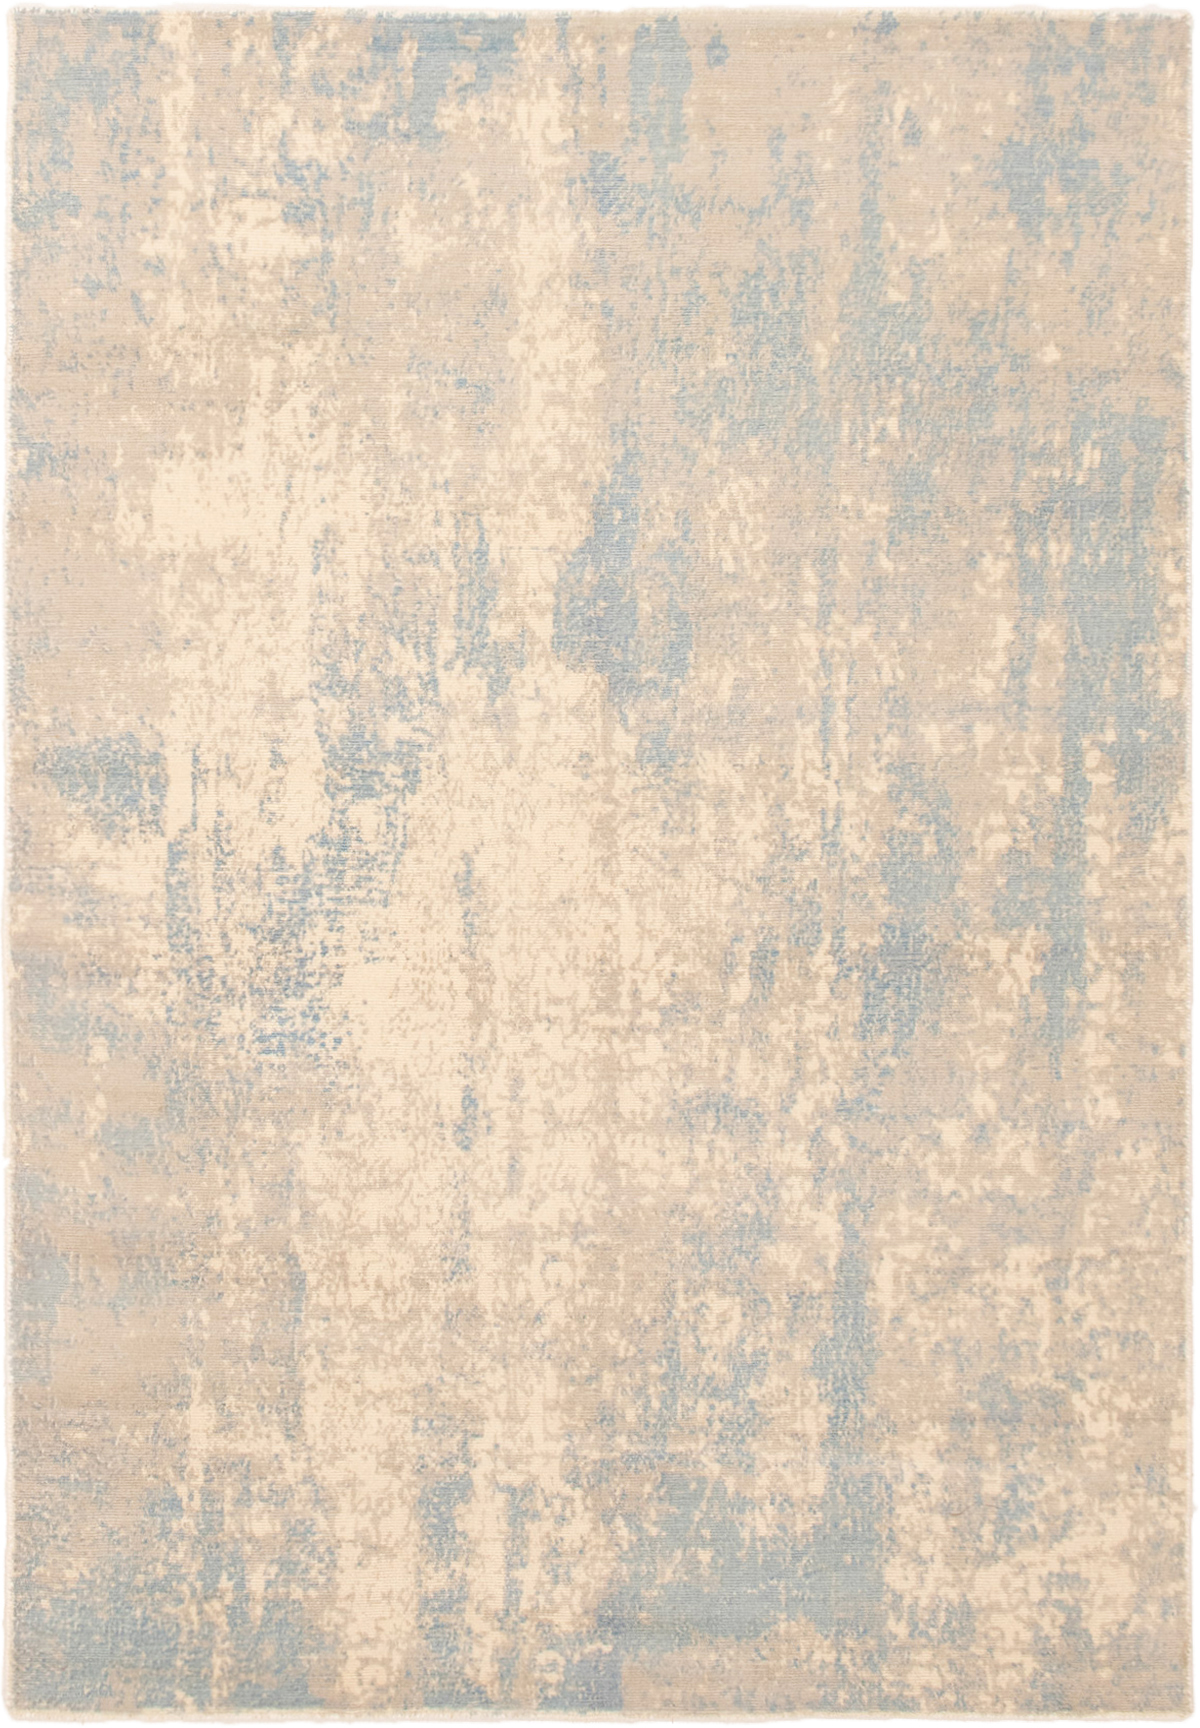 """Hand-knotted Galleria Ivory, Light Blue  Wool Rug 5'1"""" x 7'5"""" Size: 5'1"""" x 7'5"""""""